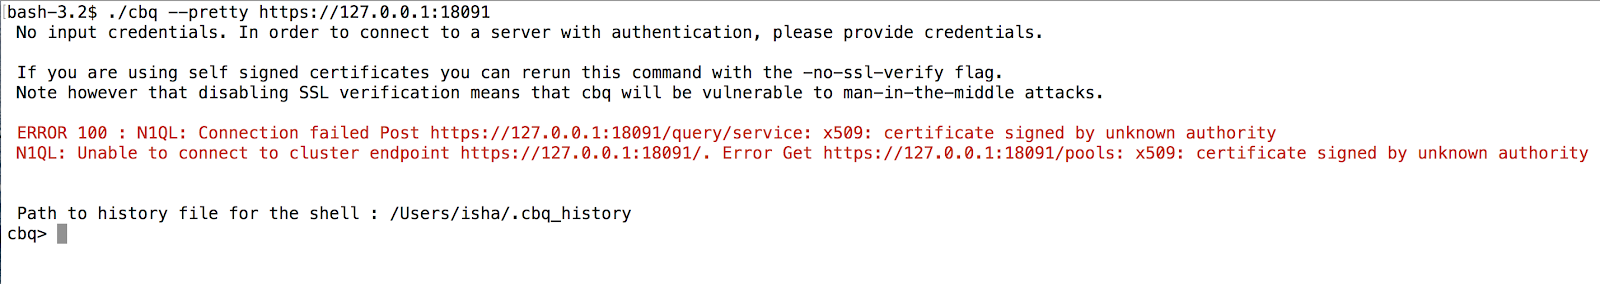 X509 Certificate Signed By Unknown Authority Aws